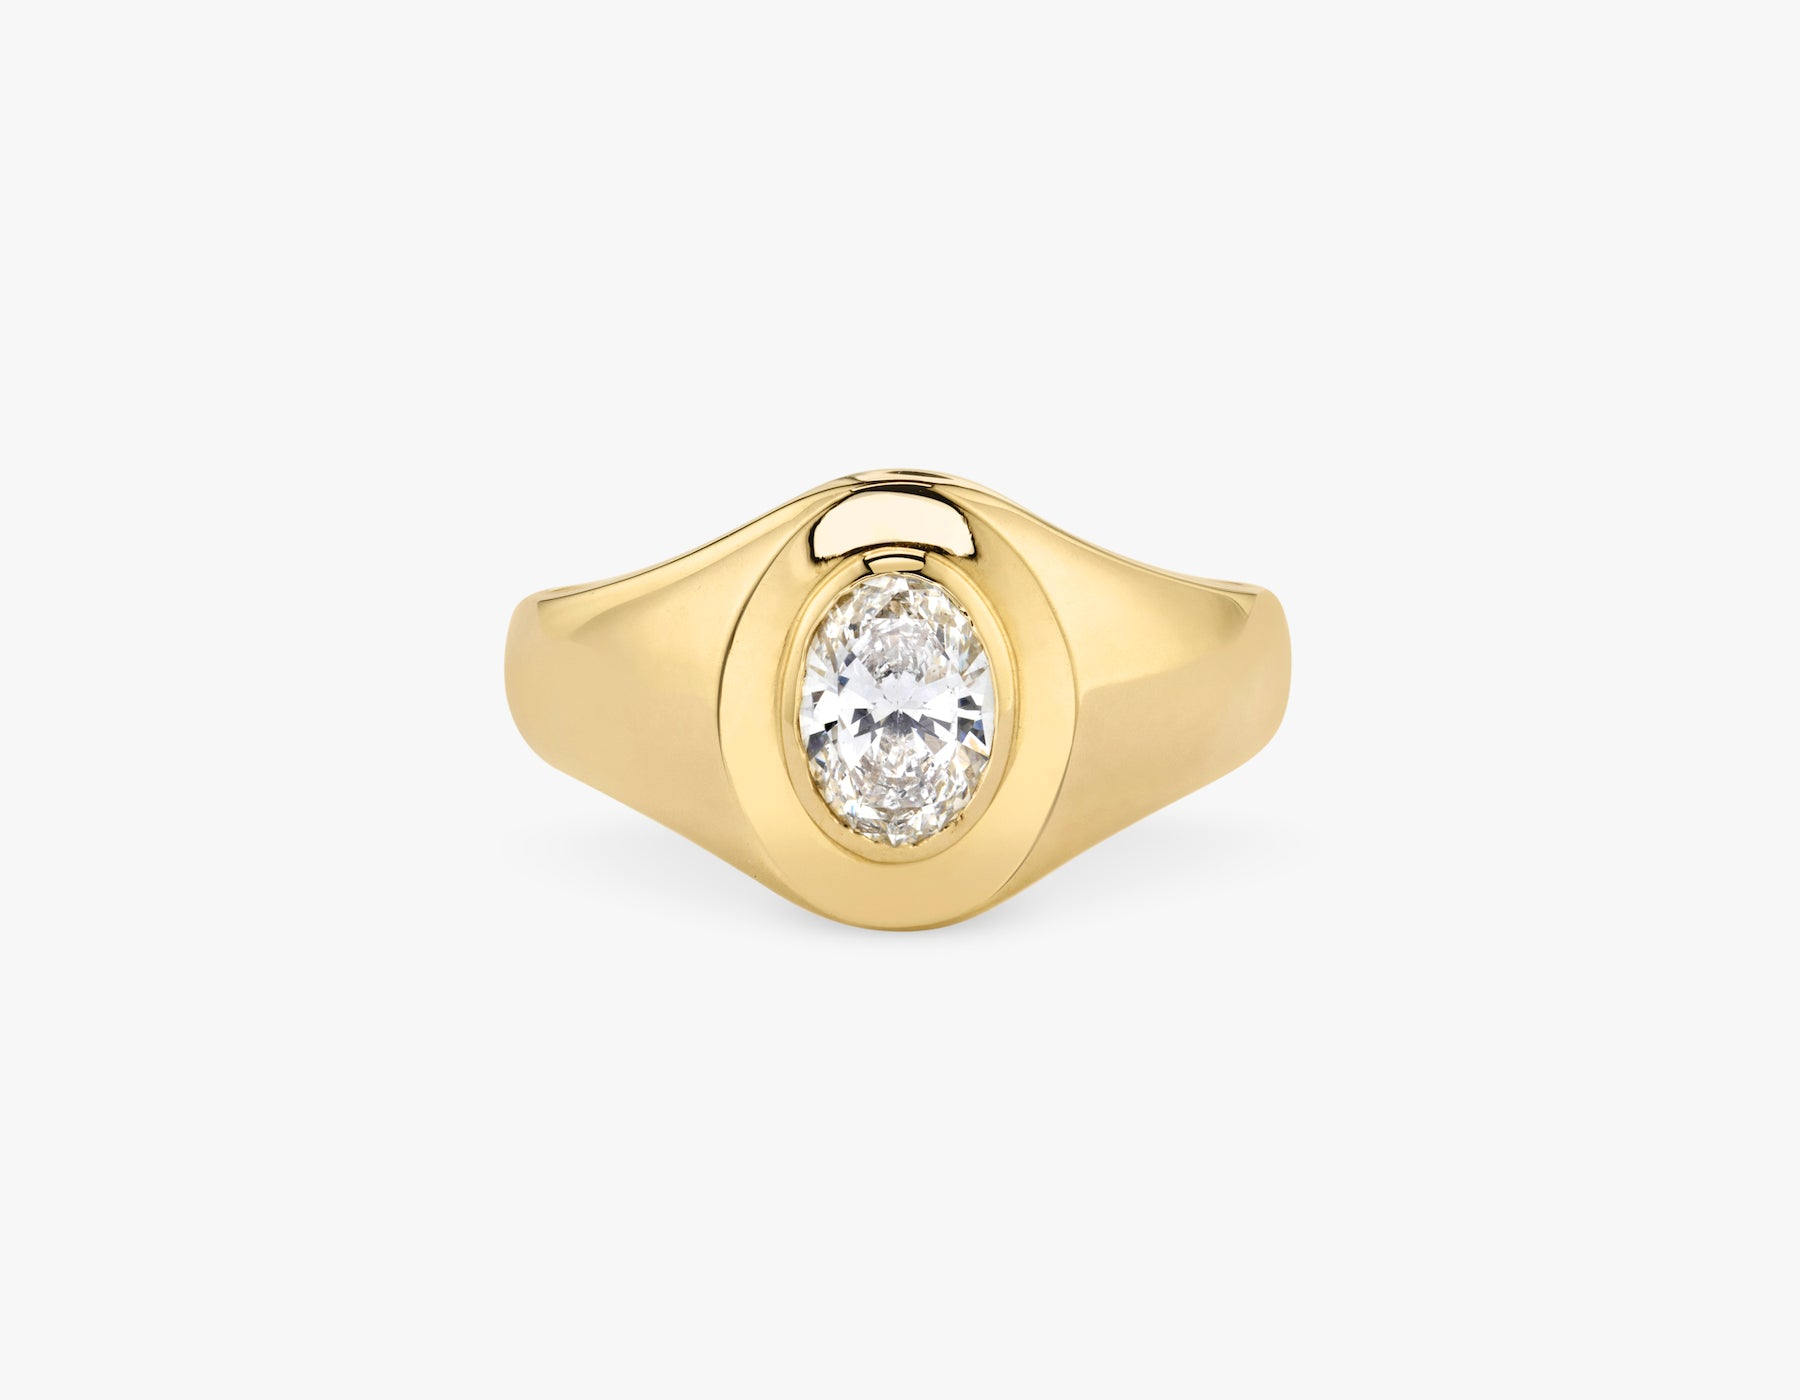 Vrai 14k solid gold classic simple Oval Diamond Signet Ring, 14K Yellow Gold